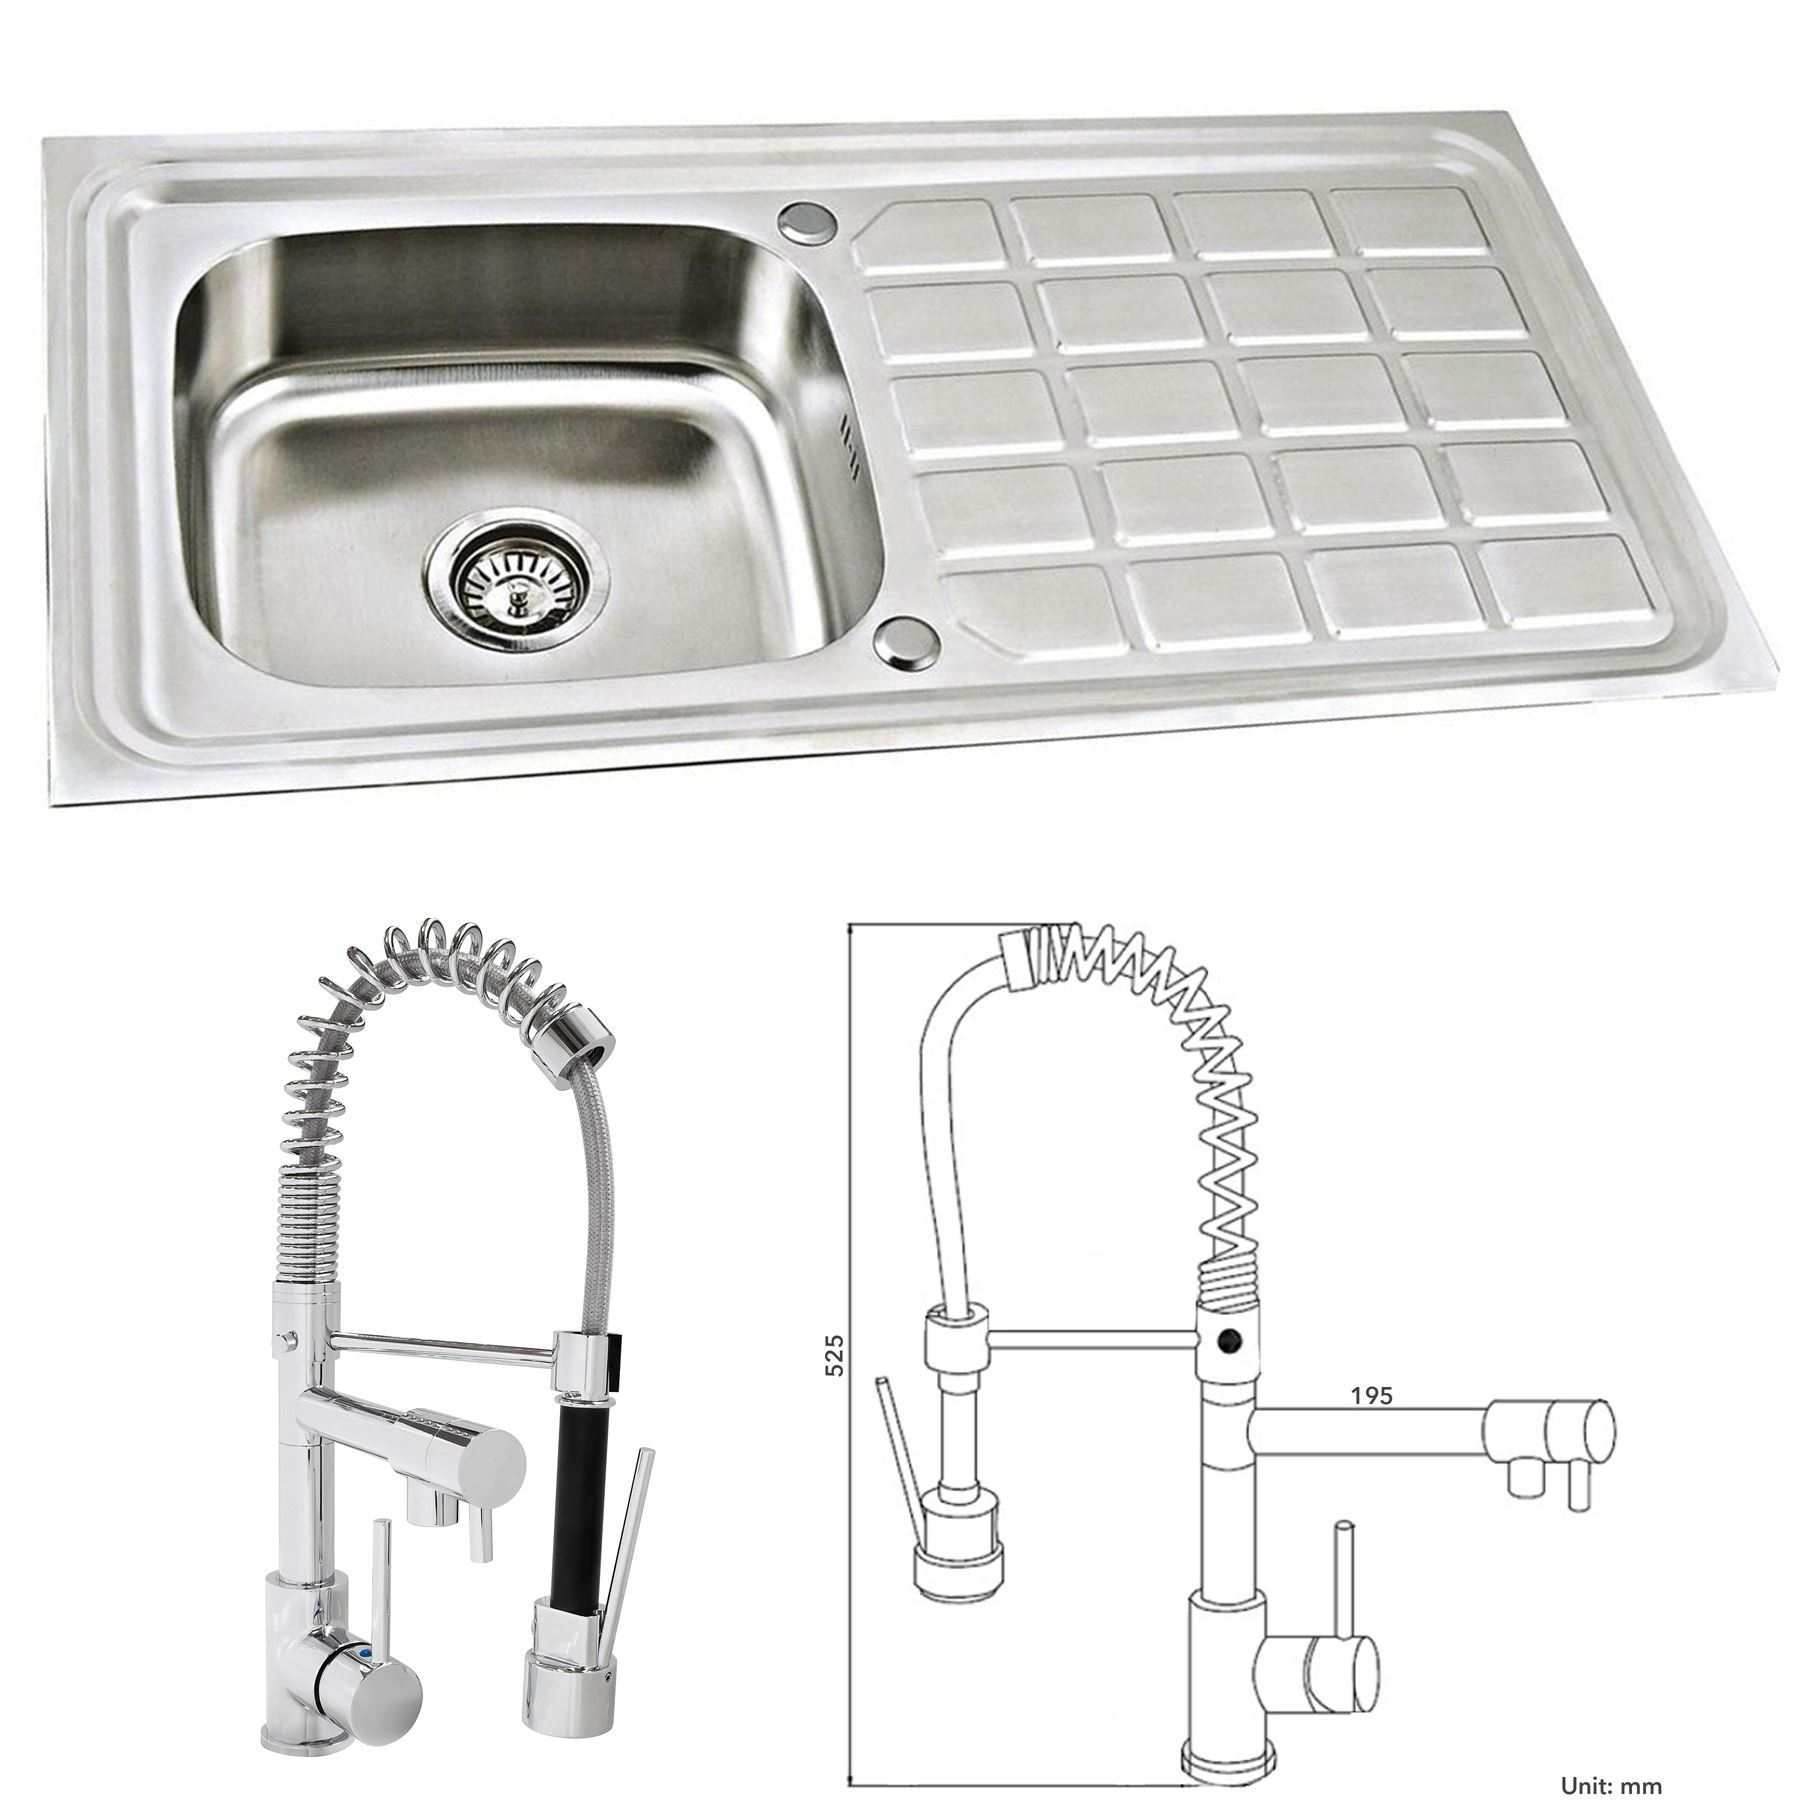 inset stainless steel kitchen sinks es3014 stainless steel kitchen sink reversible 1 0 bowl 7530